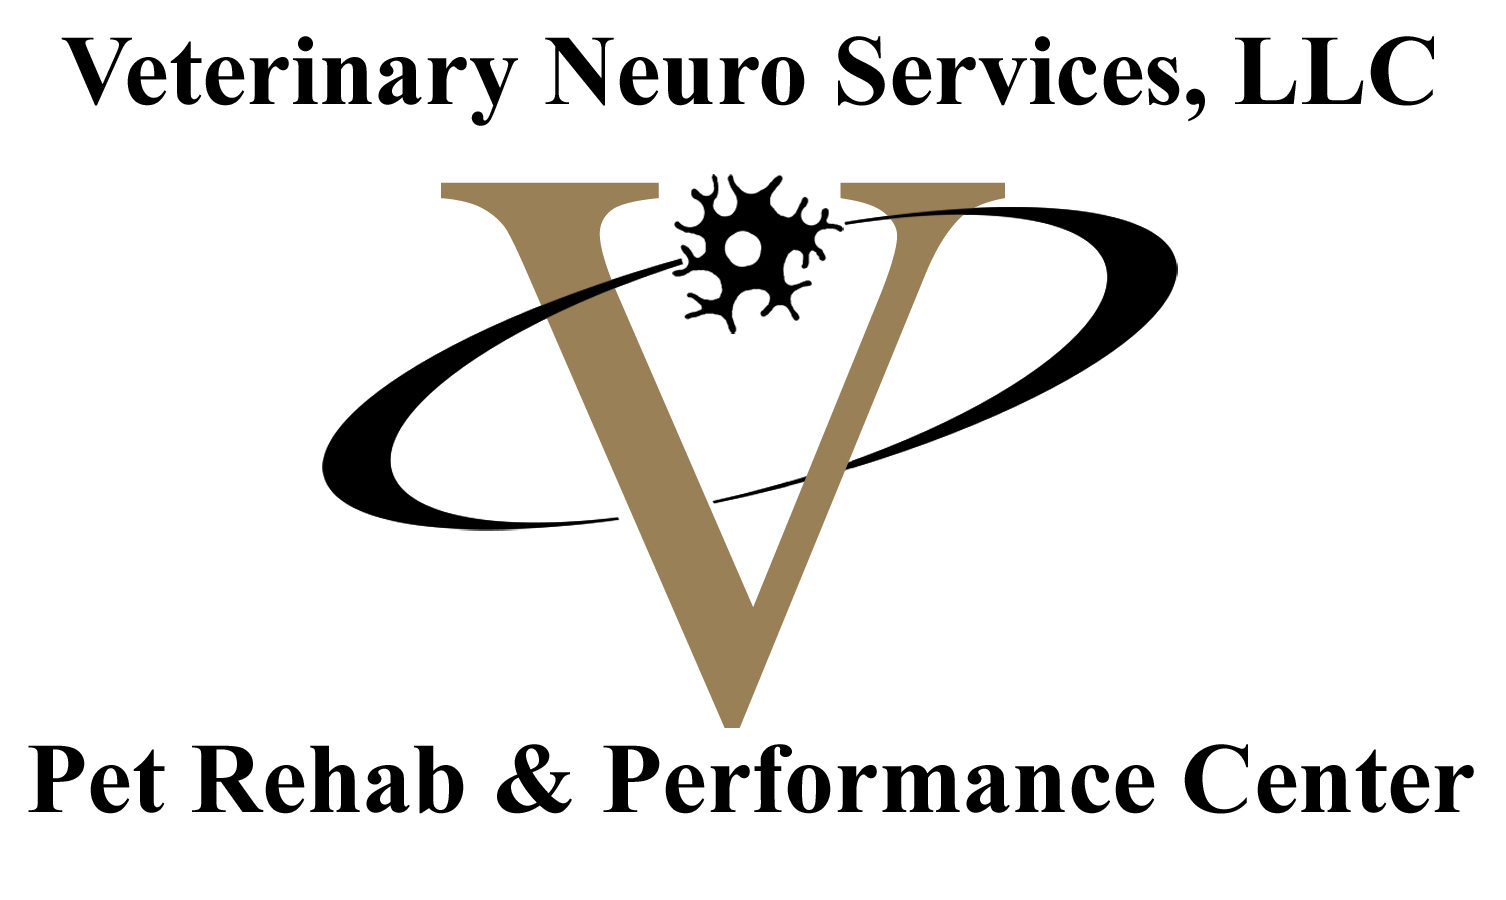 Veterinary Neuro Services, LLC